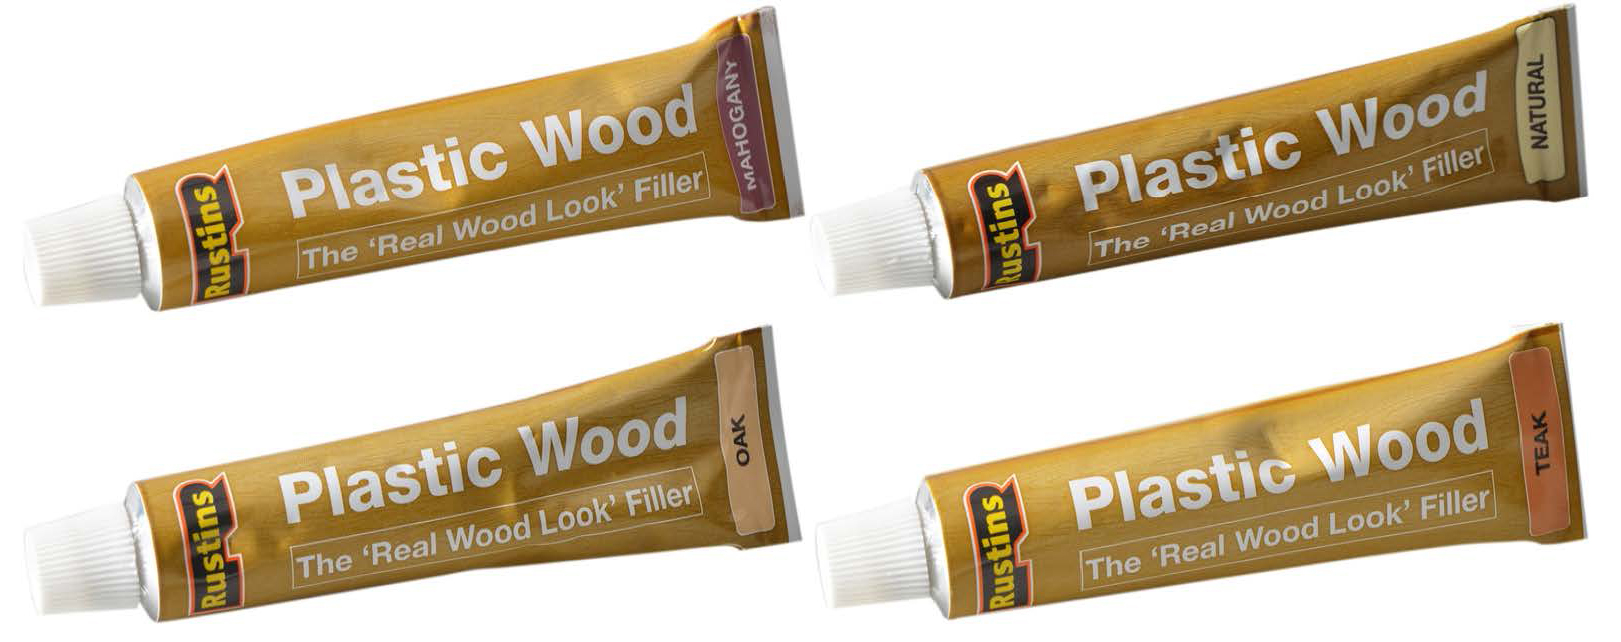 Rustins Plastic Wood Tube 125ml